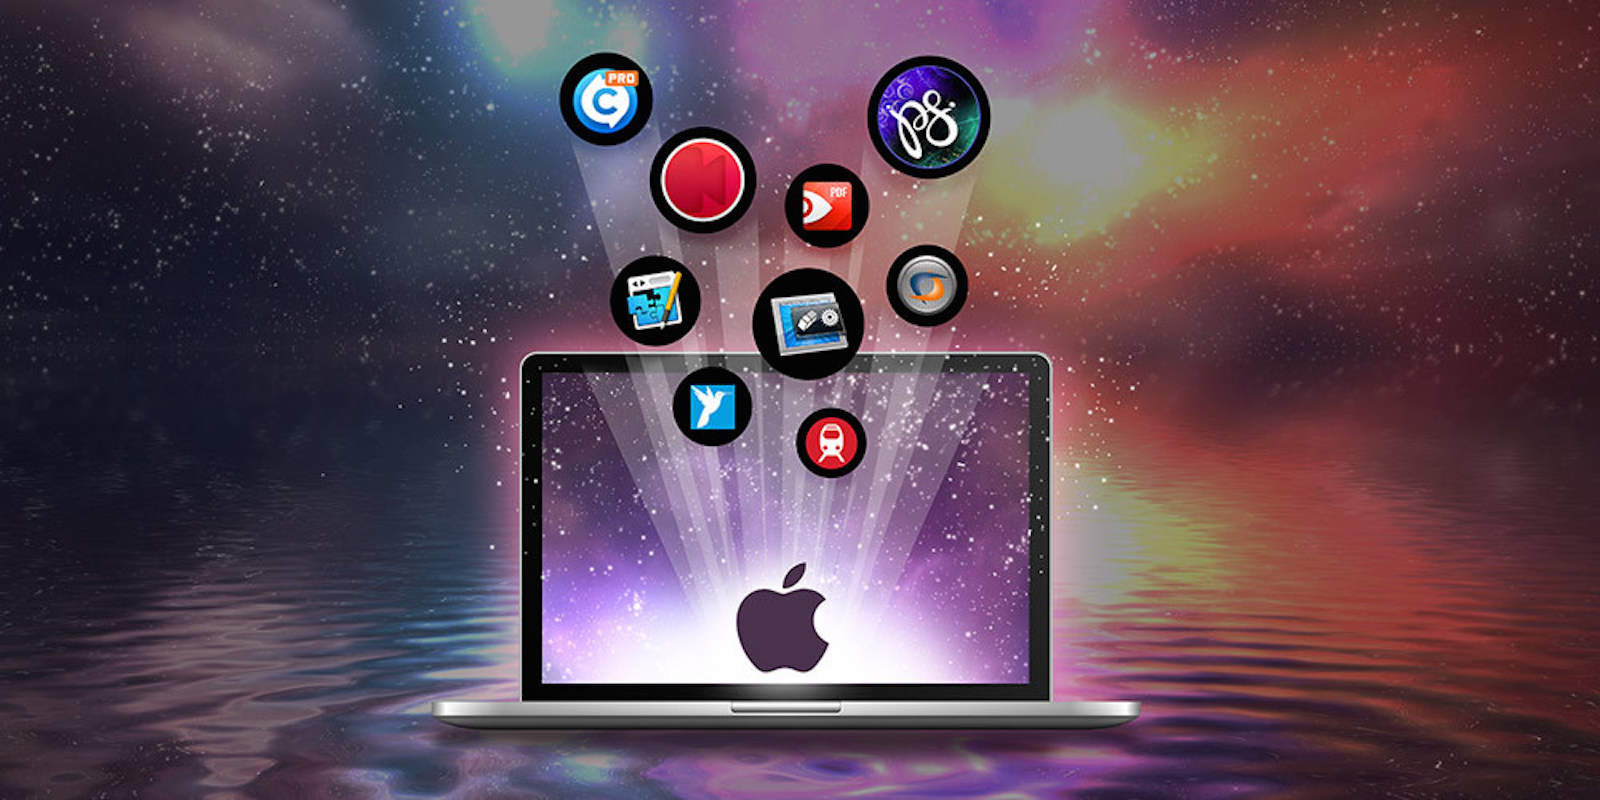 CoM - The Black Friday Mac Bundle 2.0